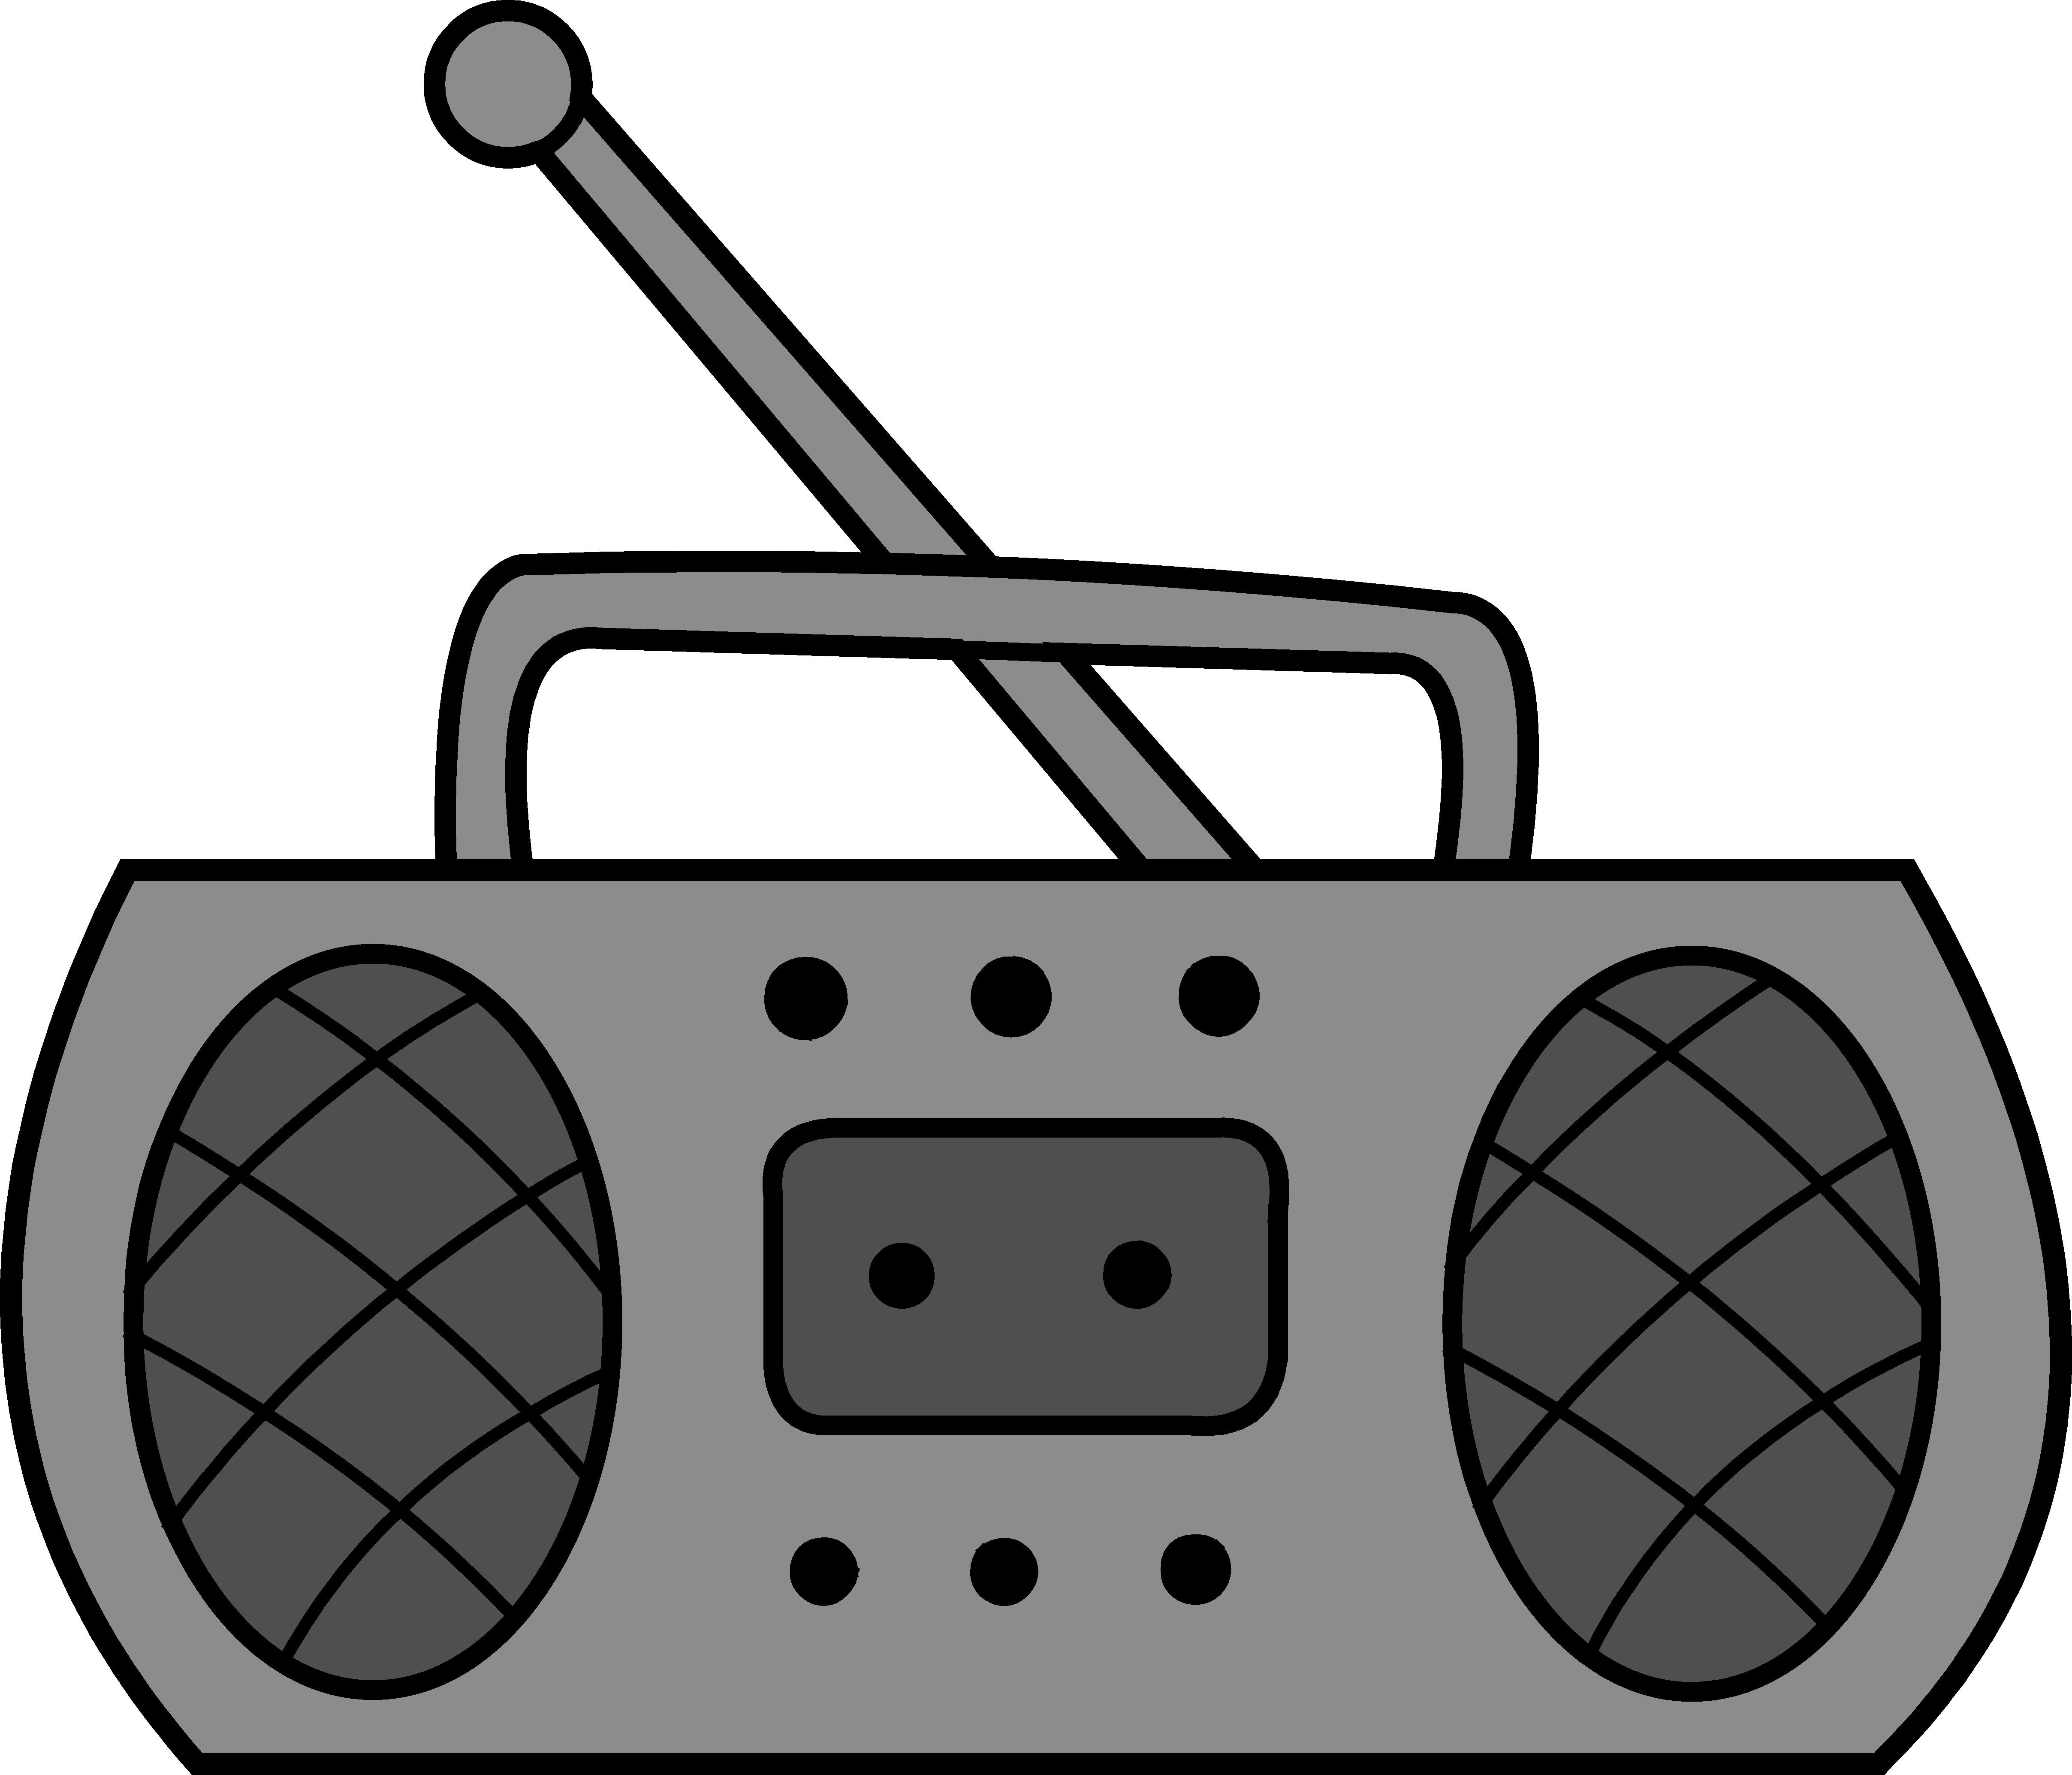 png transparent stock Radio free on dumielauxepices. Advertising clipart broadcasting